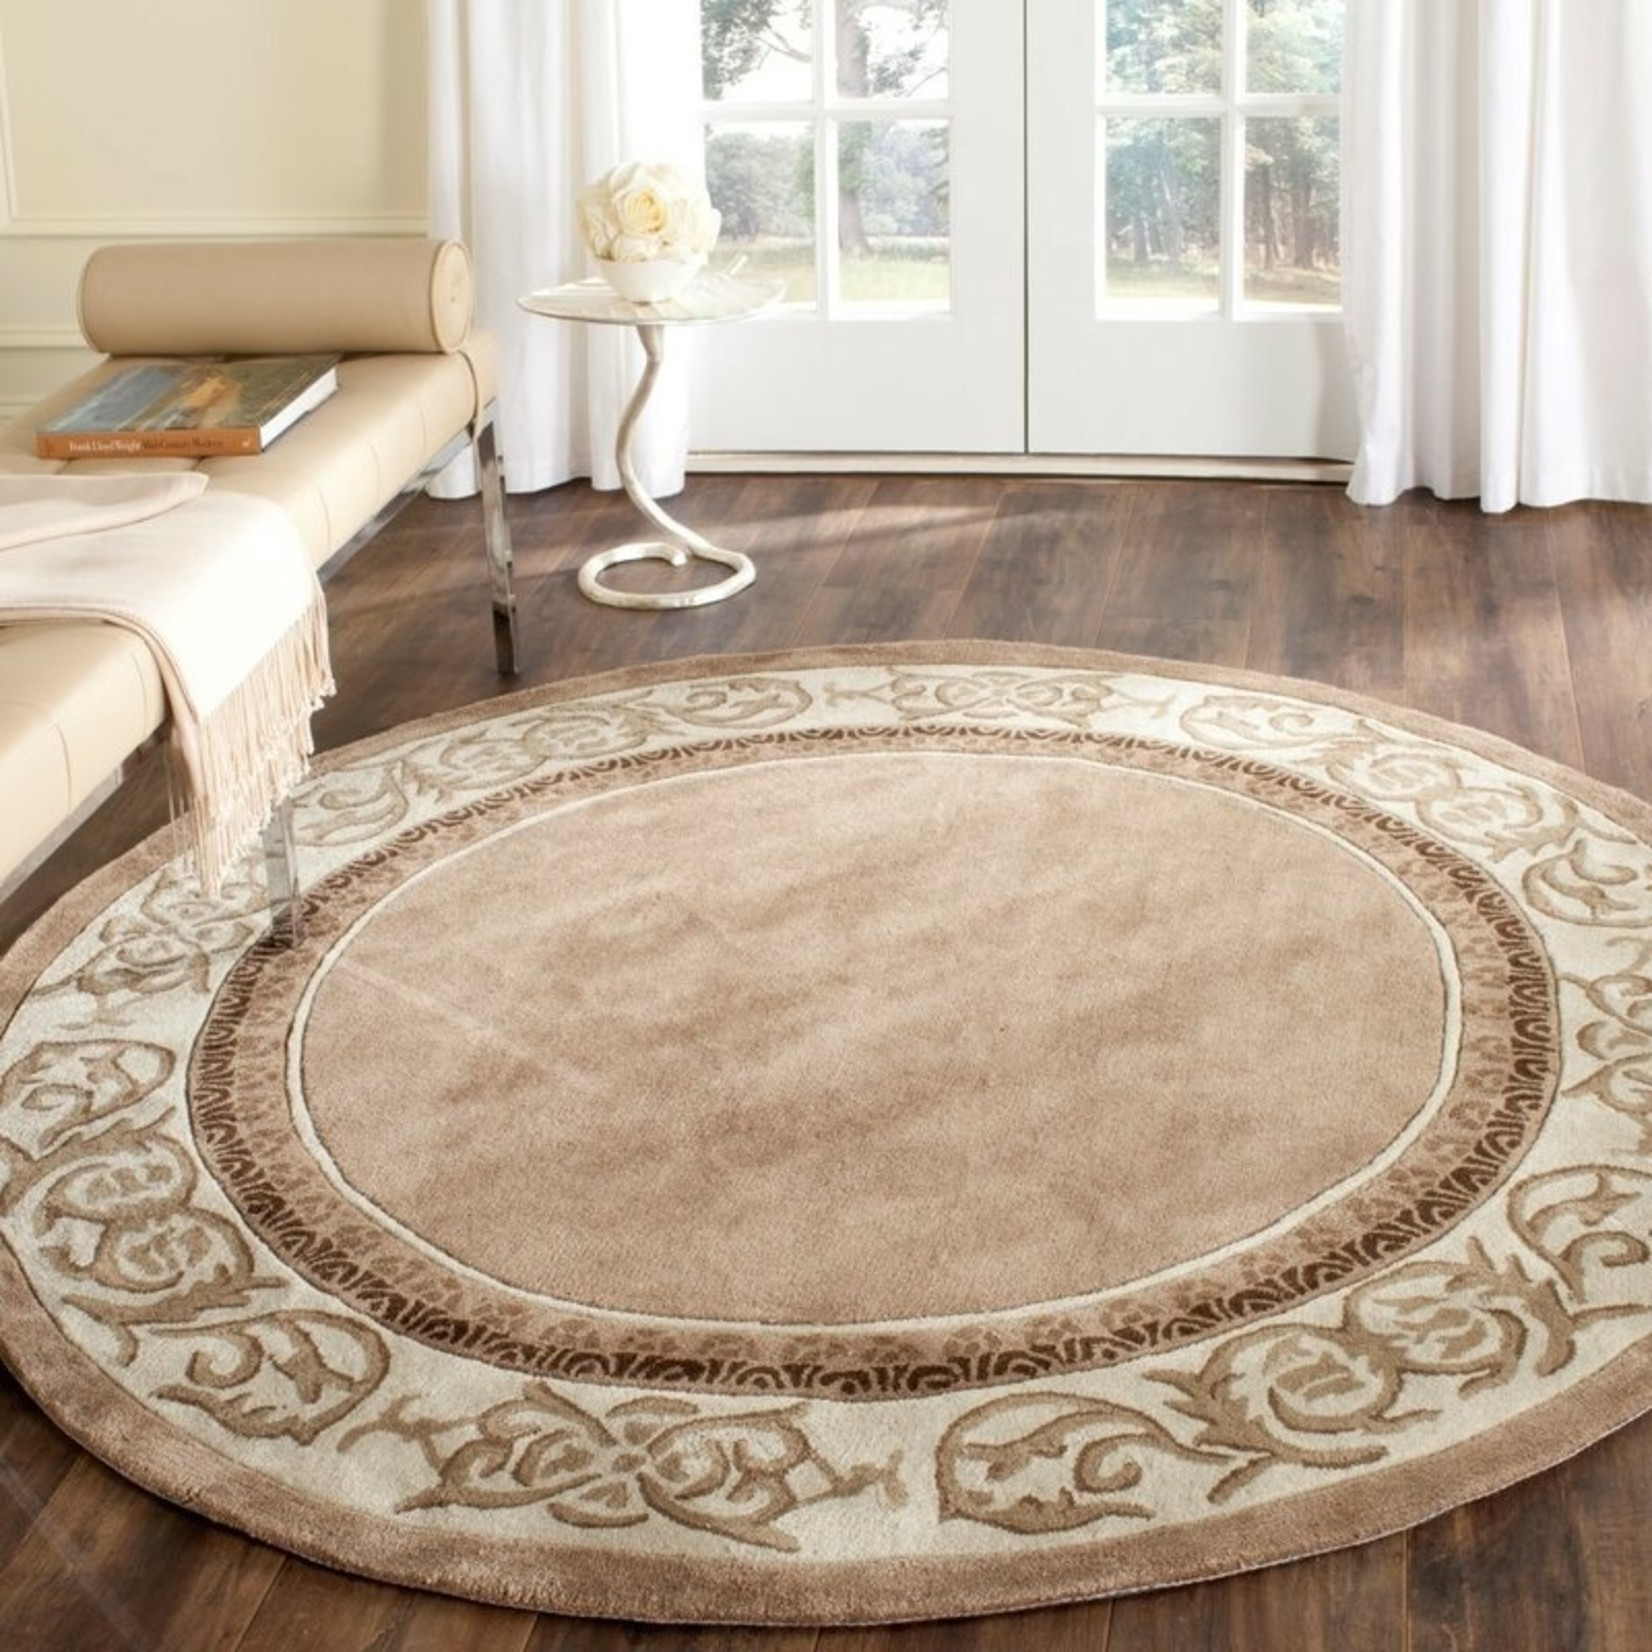 *6' Round - Fullmer Hand-Hooked Brown/Mocha/Ivory Area Rug